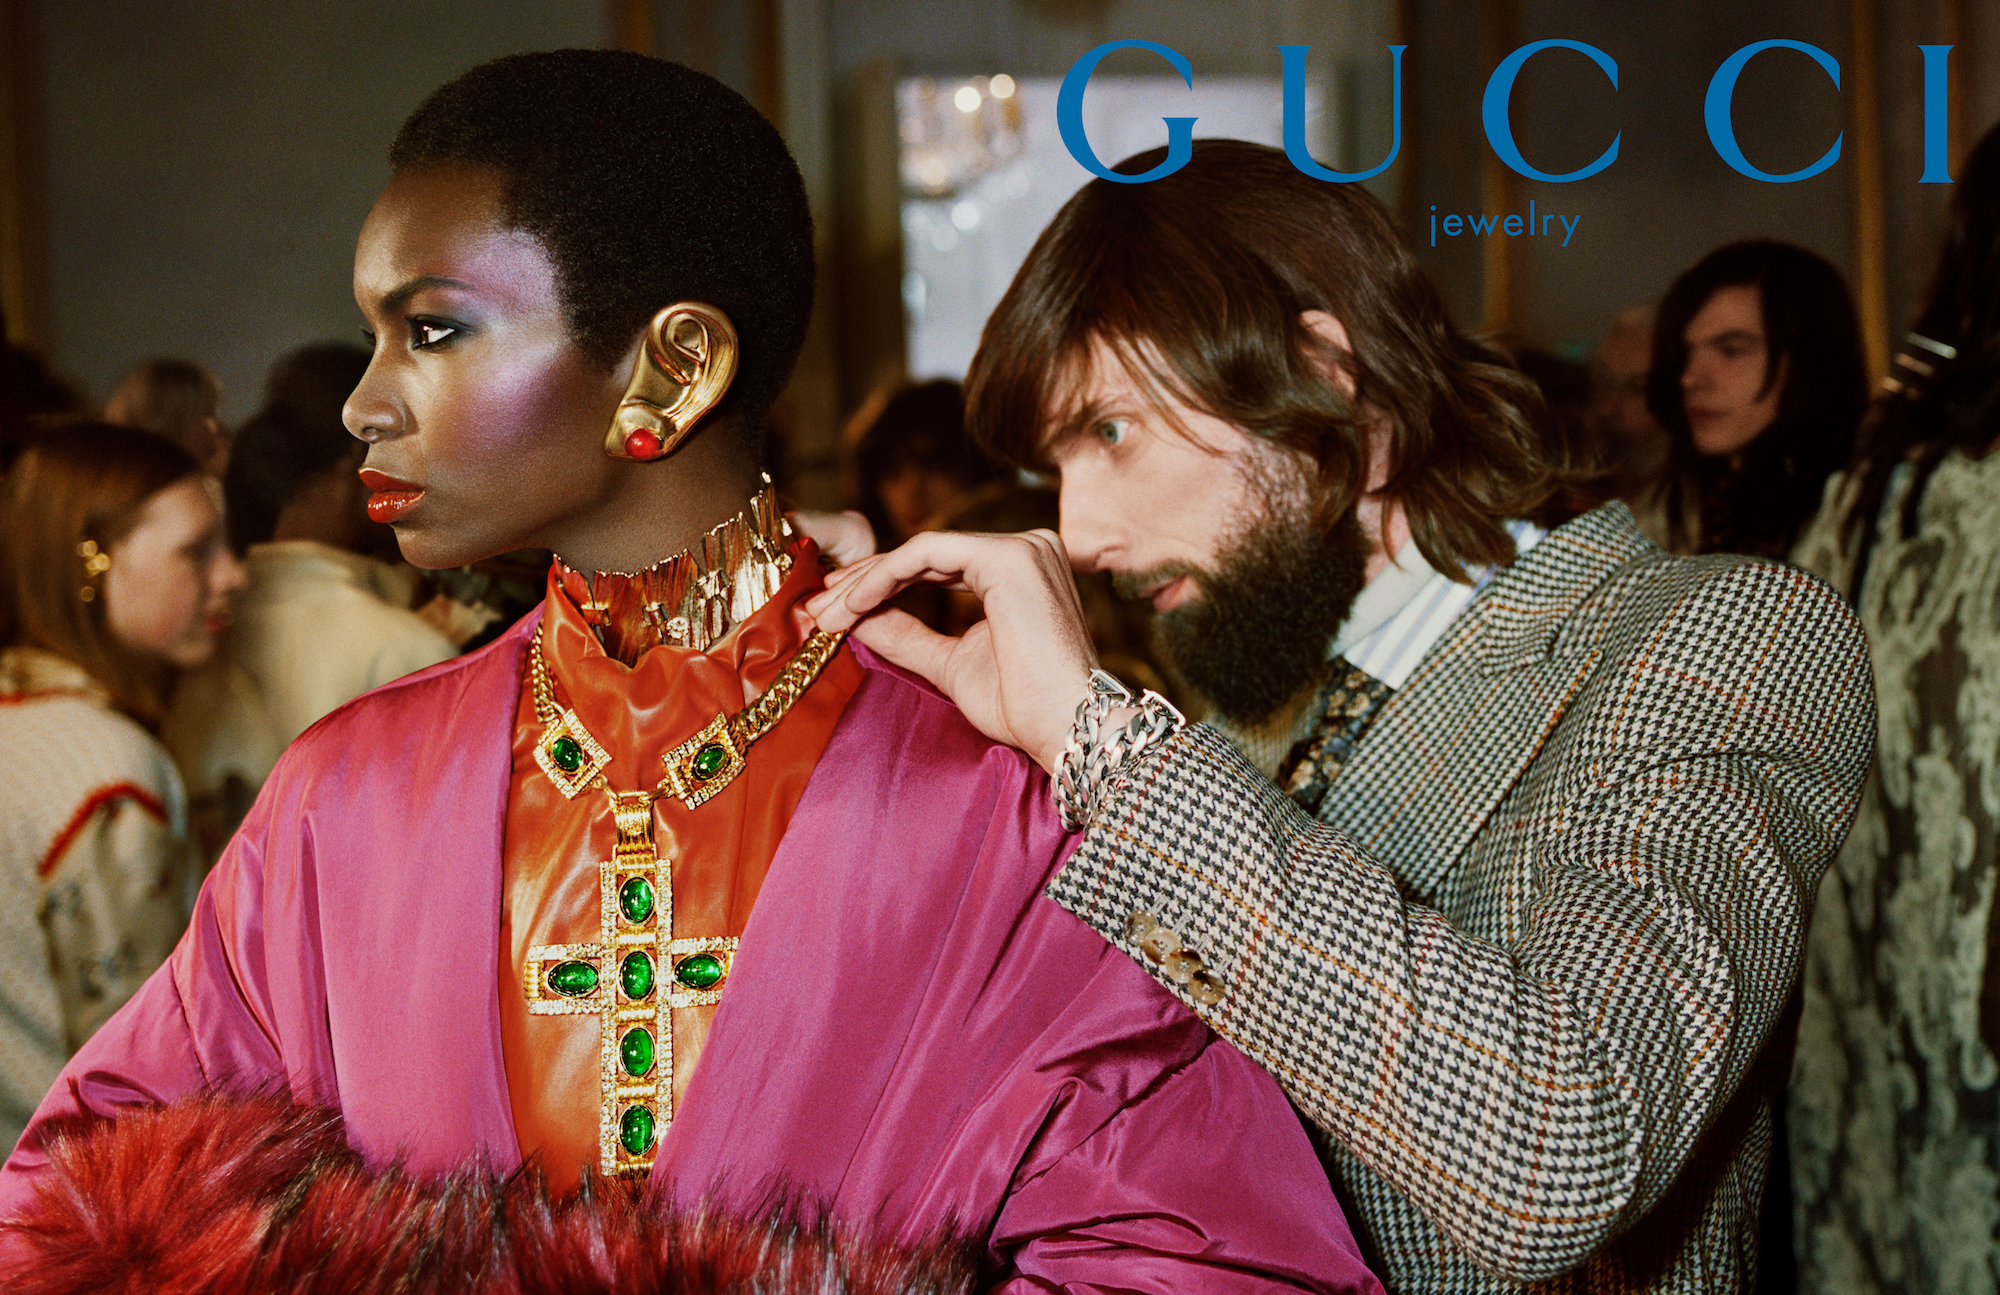 Gucci AW19 campaign shot by Glen Luchford pink jacket